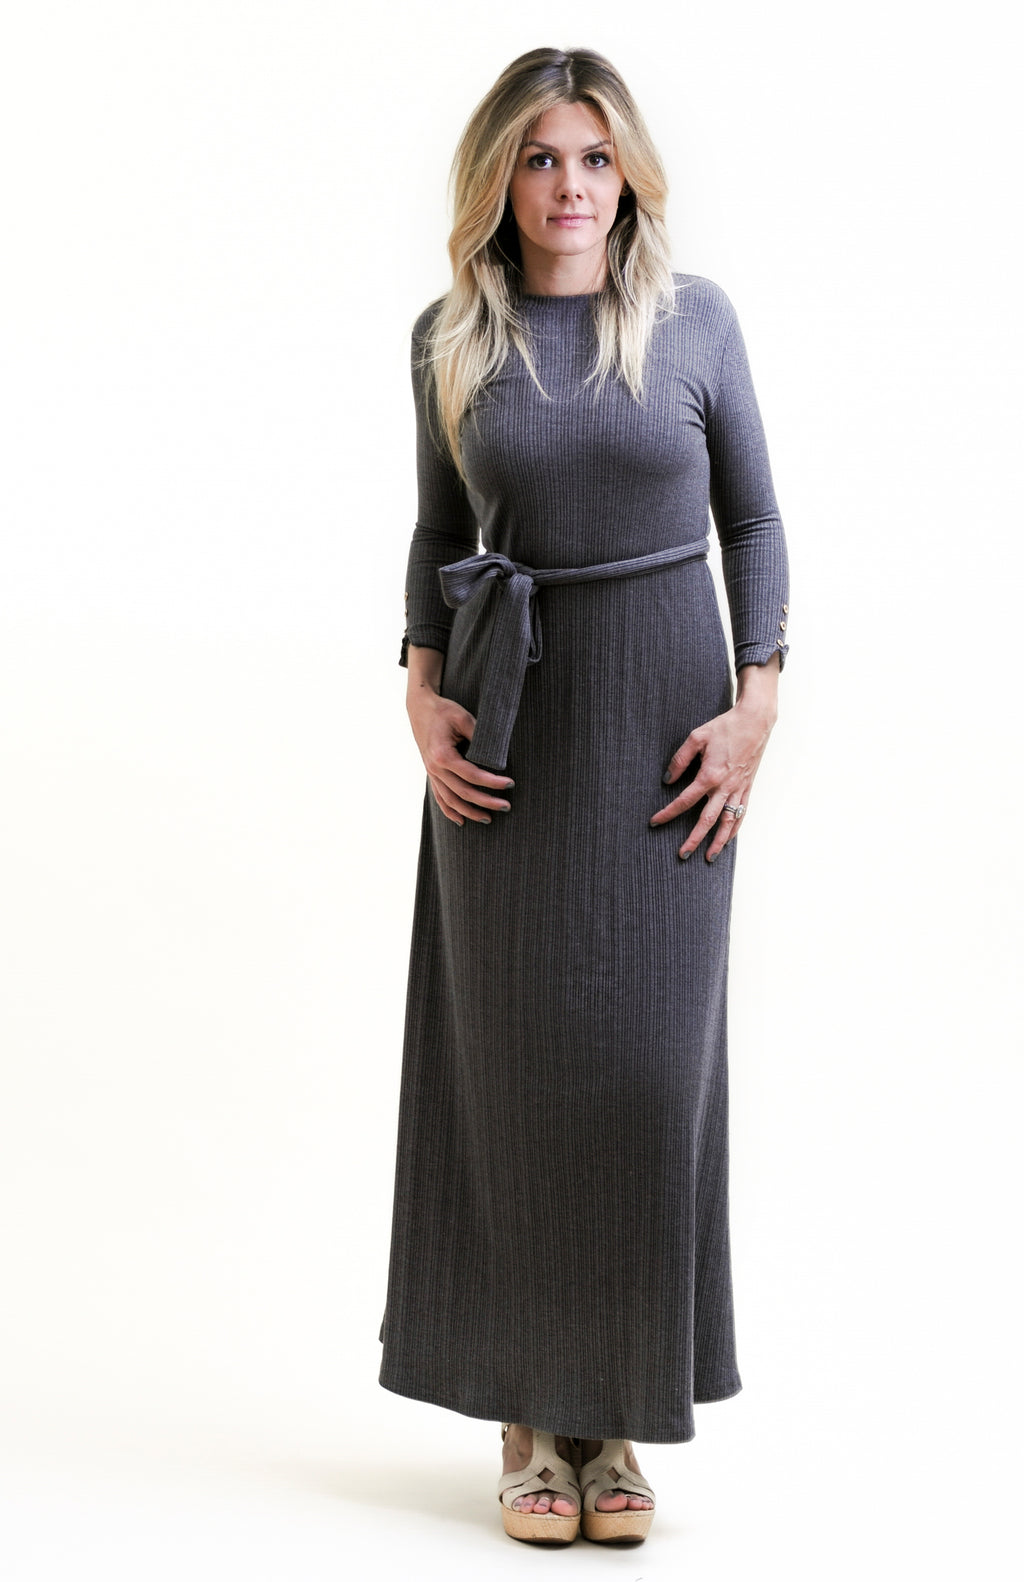 Heather Grey Ribbed Maxi Dress with gold buttons nursing friendly